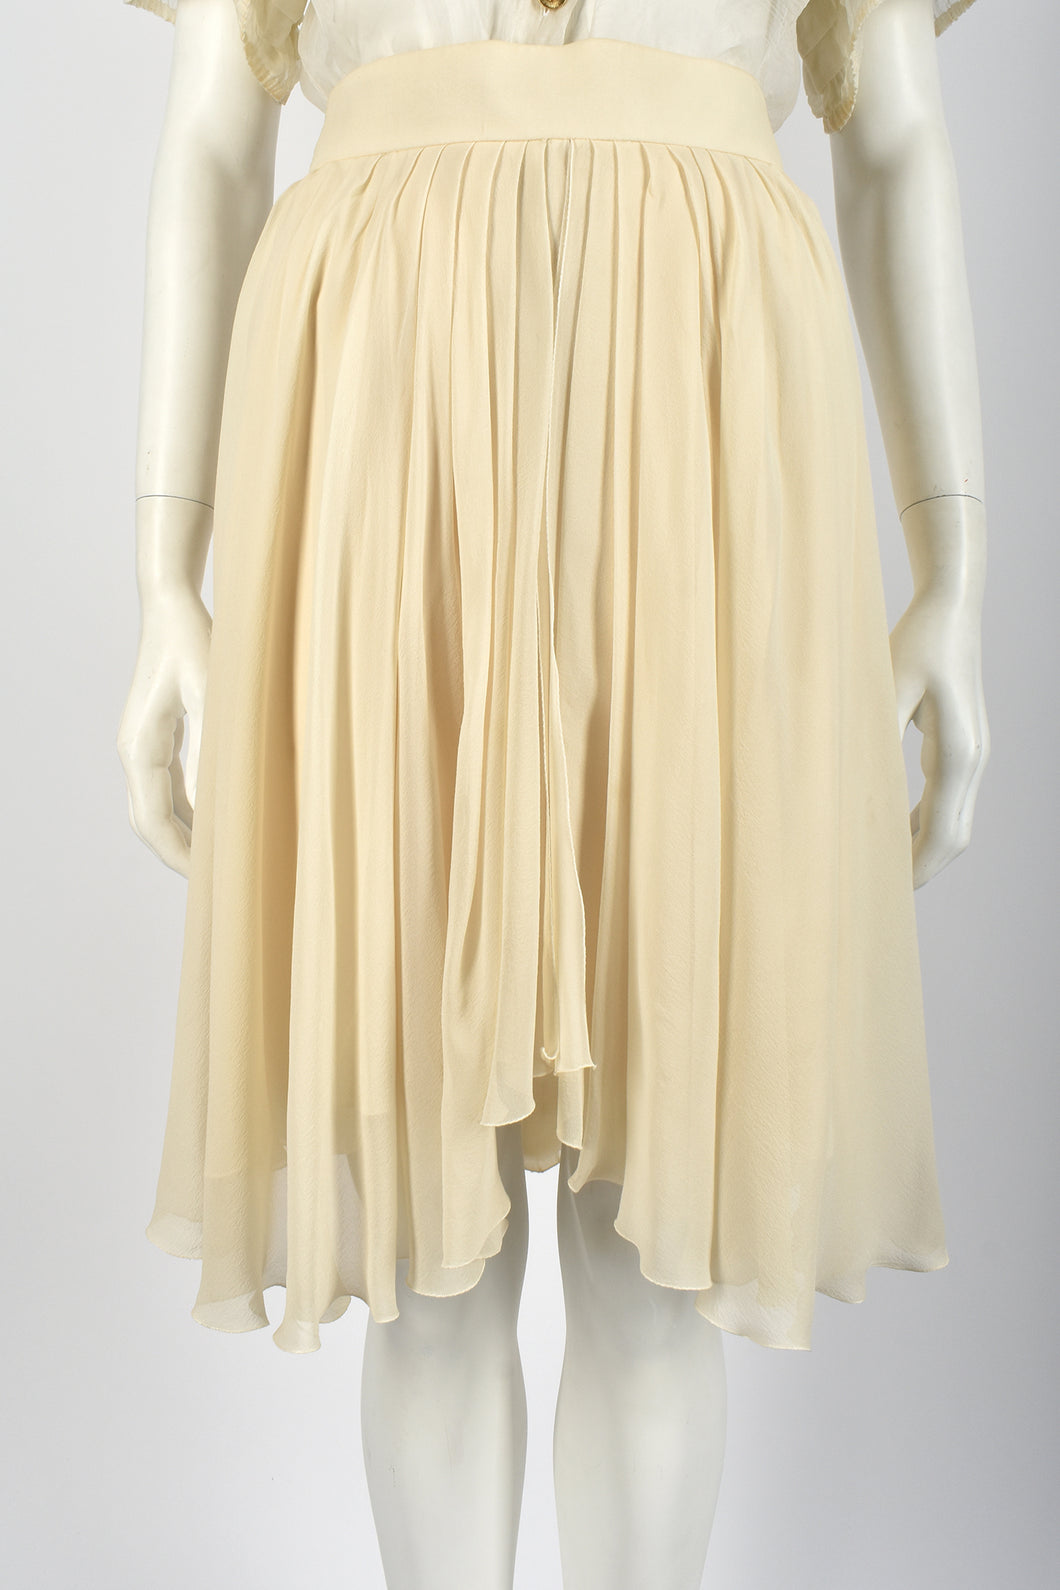 CHANEL silk chiffon skirt / M-L